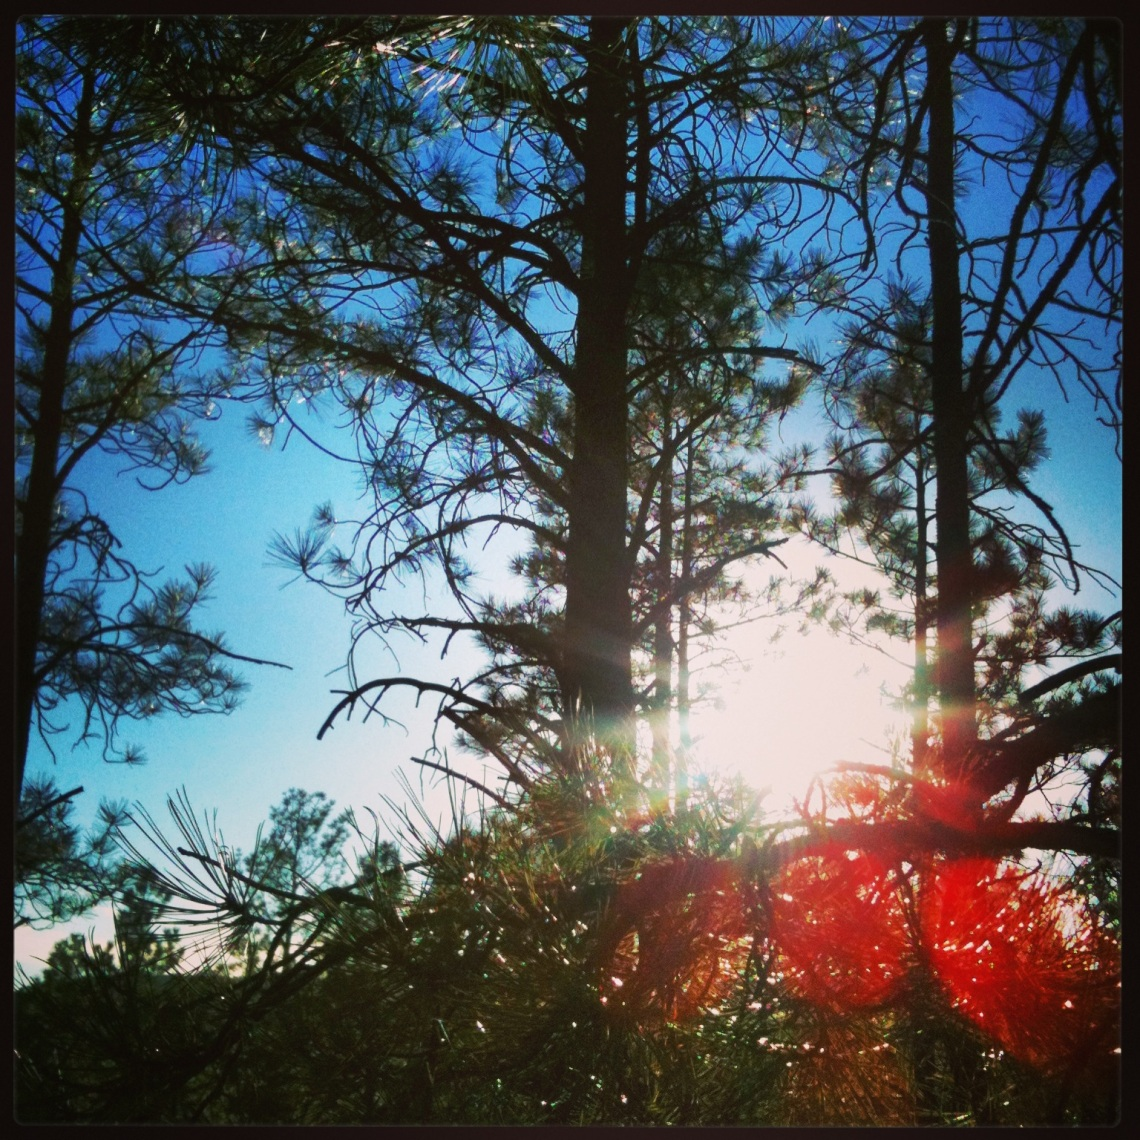 sun shining in the pines (c) 2014 Holly Troy